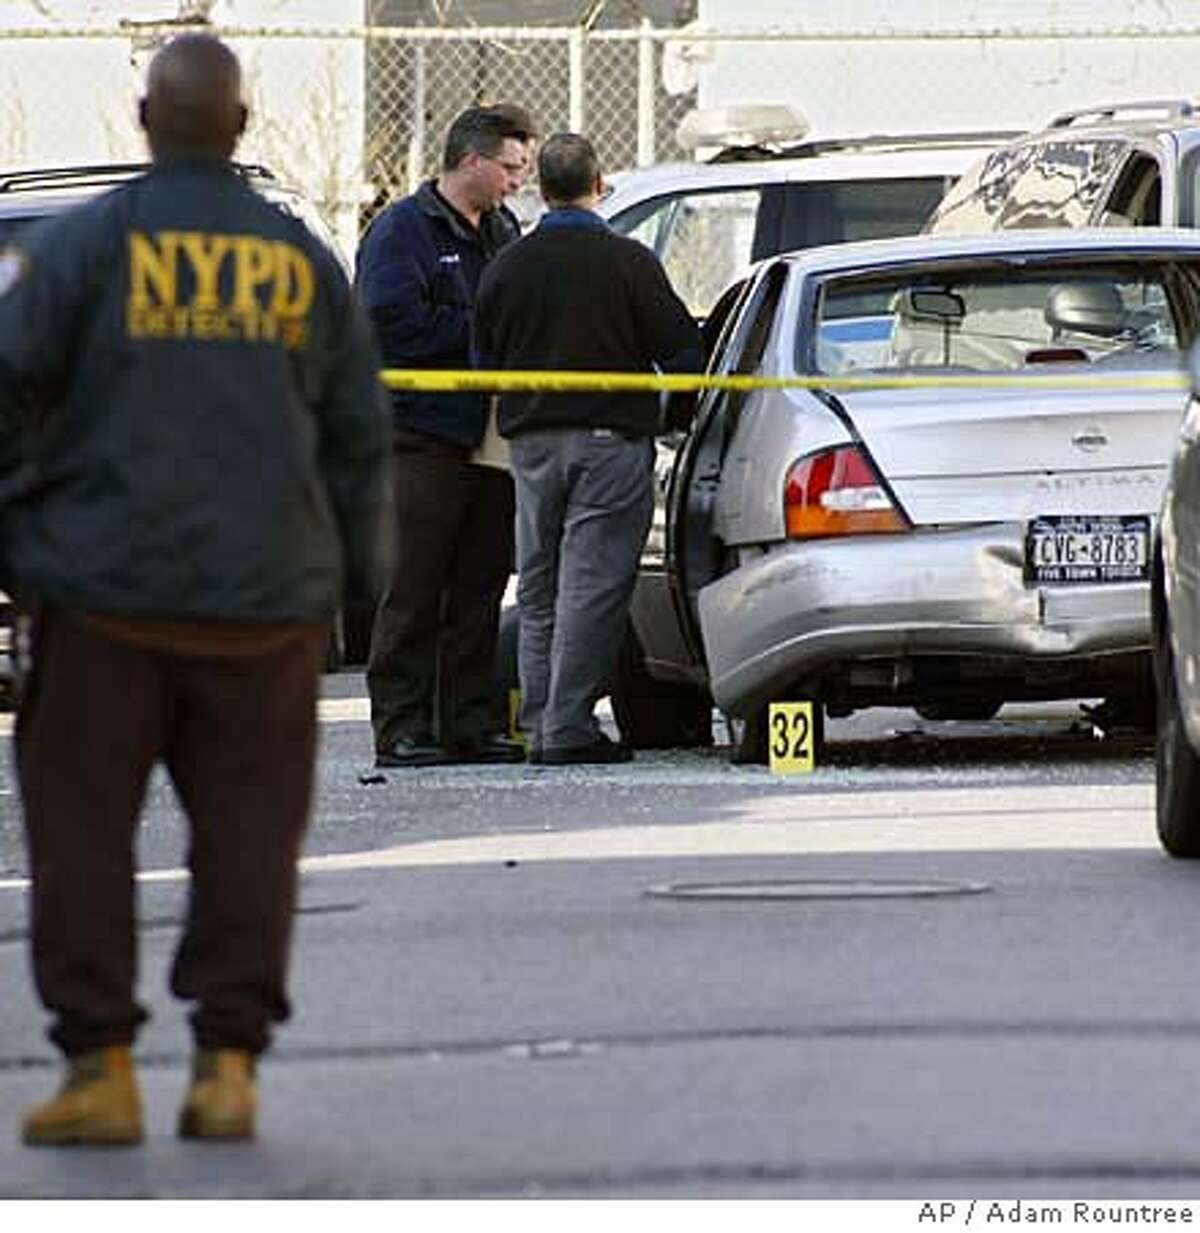 New York Police Depatment crime scene investigators inspect a vehicle involved in a police shooting that took place near the Kalua Cabaret, in the Jamaica section of Queens, N.Y., Saturday, Nov. 25, 2006. A bachelor party at the Queens strip club ended in tragedy Saturday morning after police officers opened fire on a group of men leaving the establishment _ killing a groom on his wedding day and leaving two other men injured. (AP Photo/Adam Rountree)